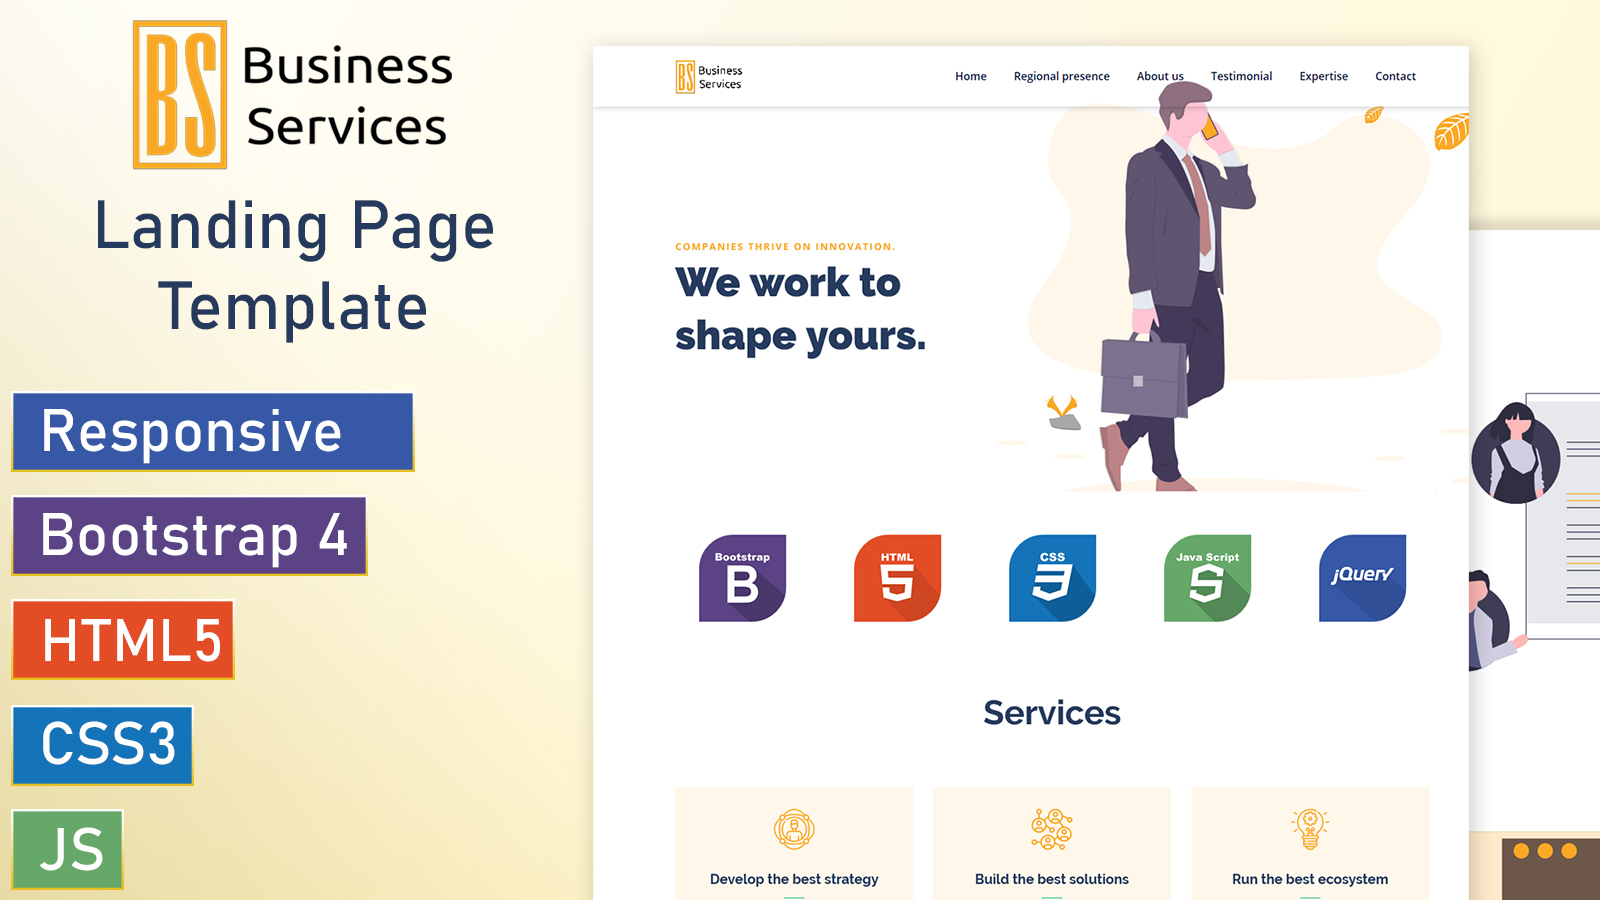 BusinessService - Bootstrap 4 Landing Page Template